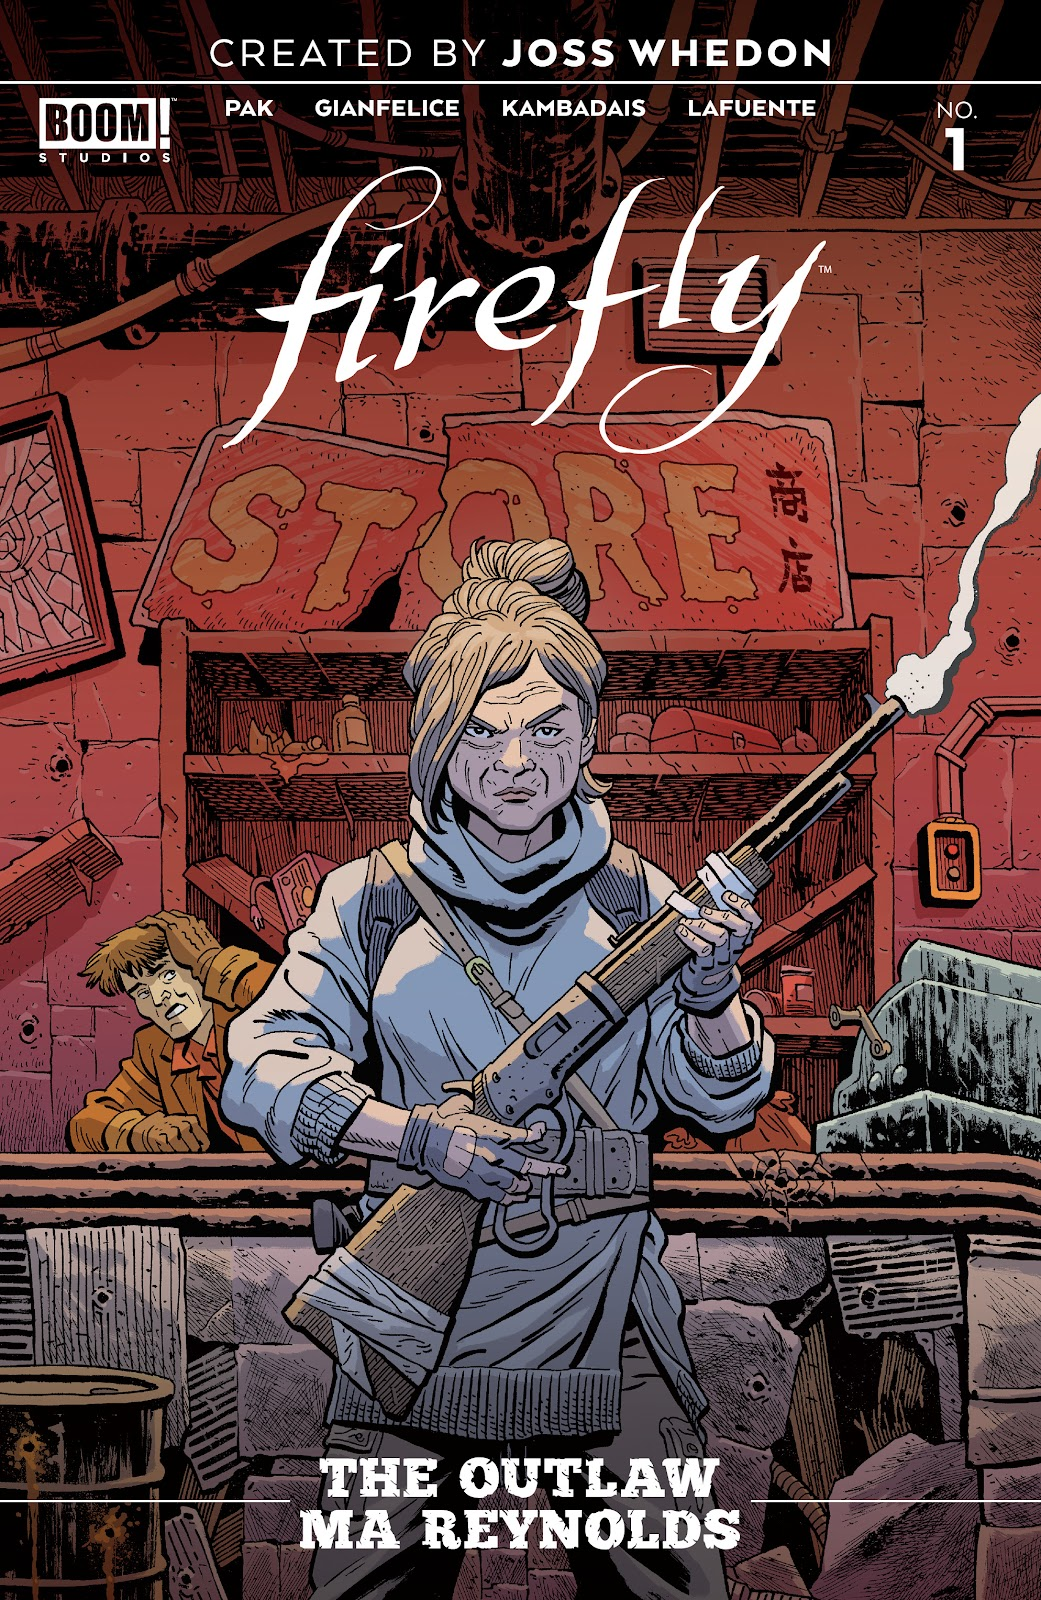 Read online Firefly: The Outlaw Ma Reynolds comic -  Issue # Full - 1